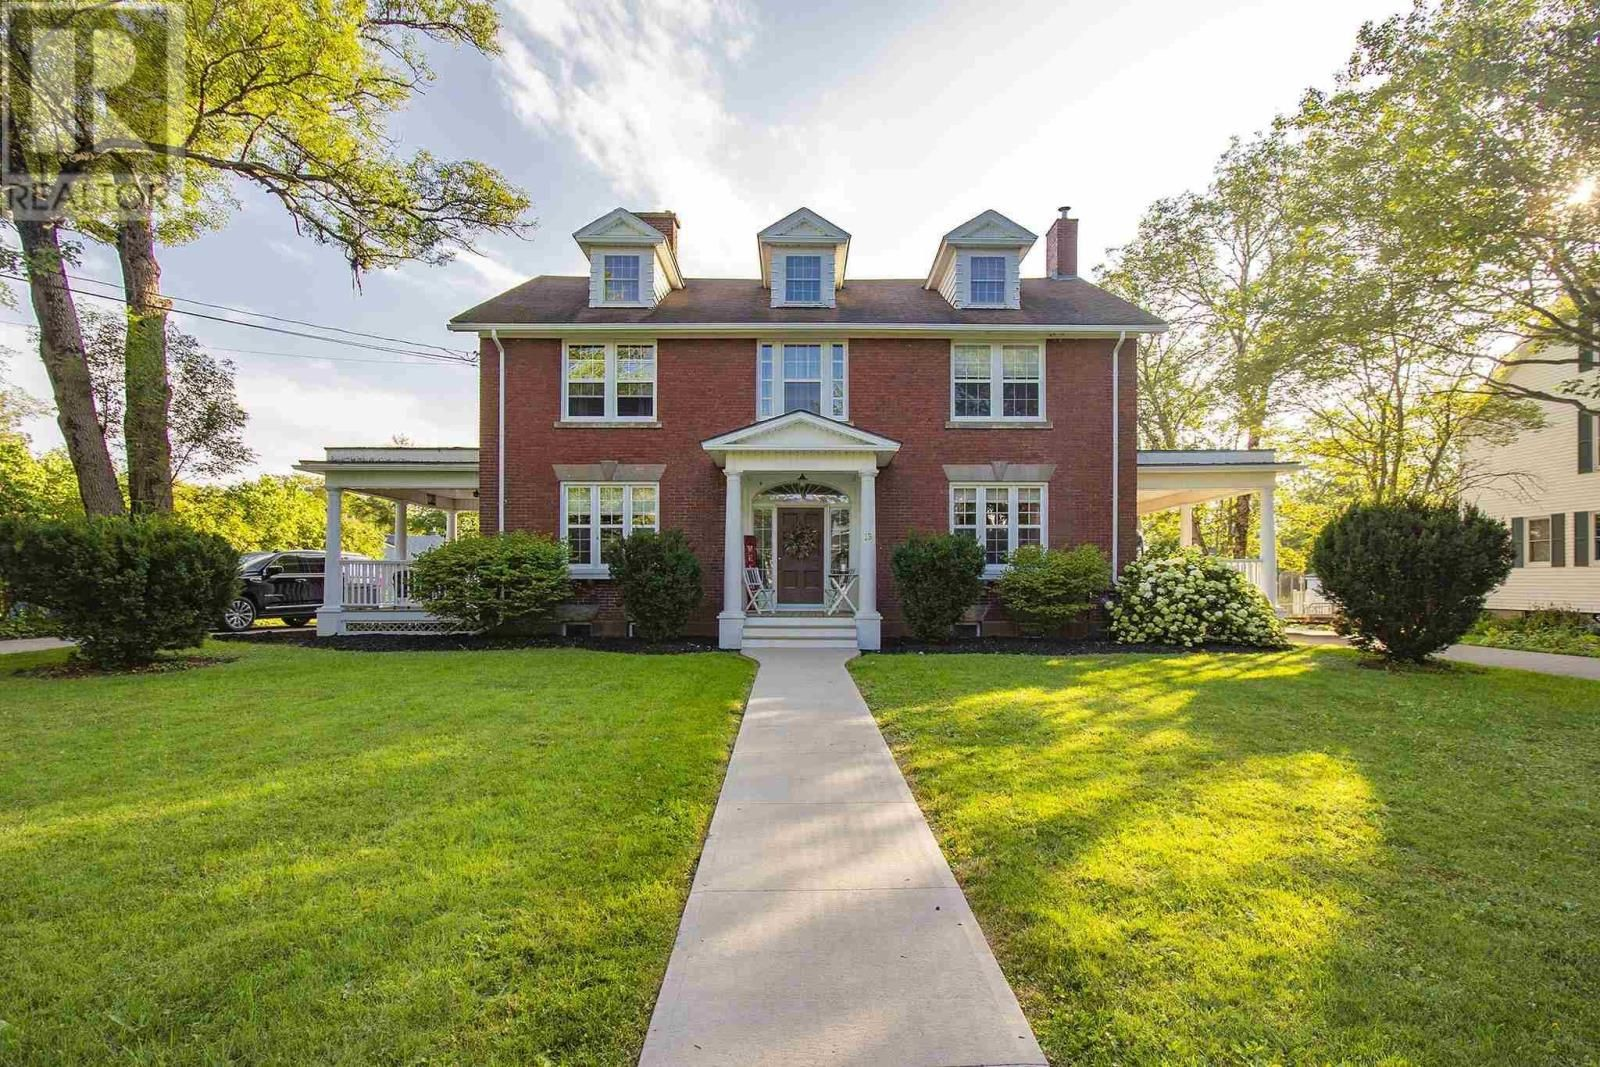 Main Photo: 13 Regent Street in Amherst: House for sale : MLS®# 202121238